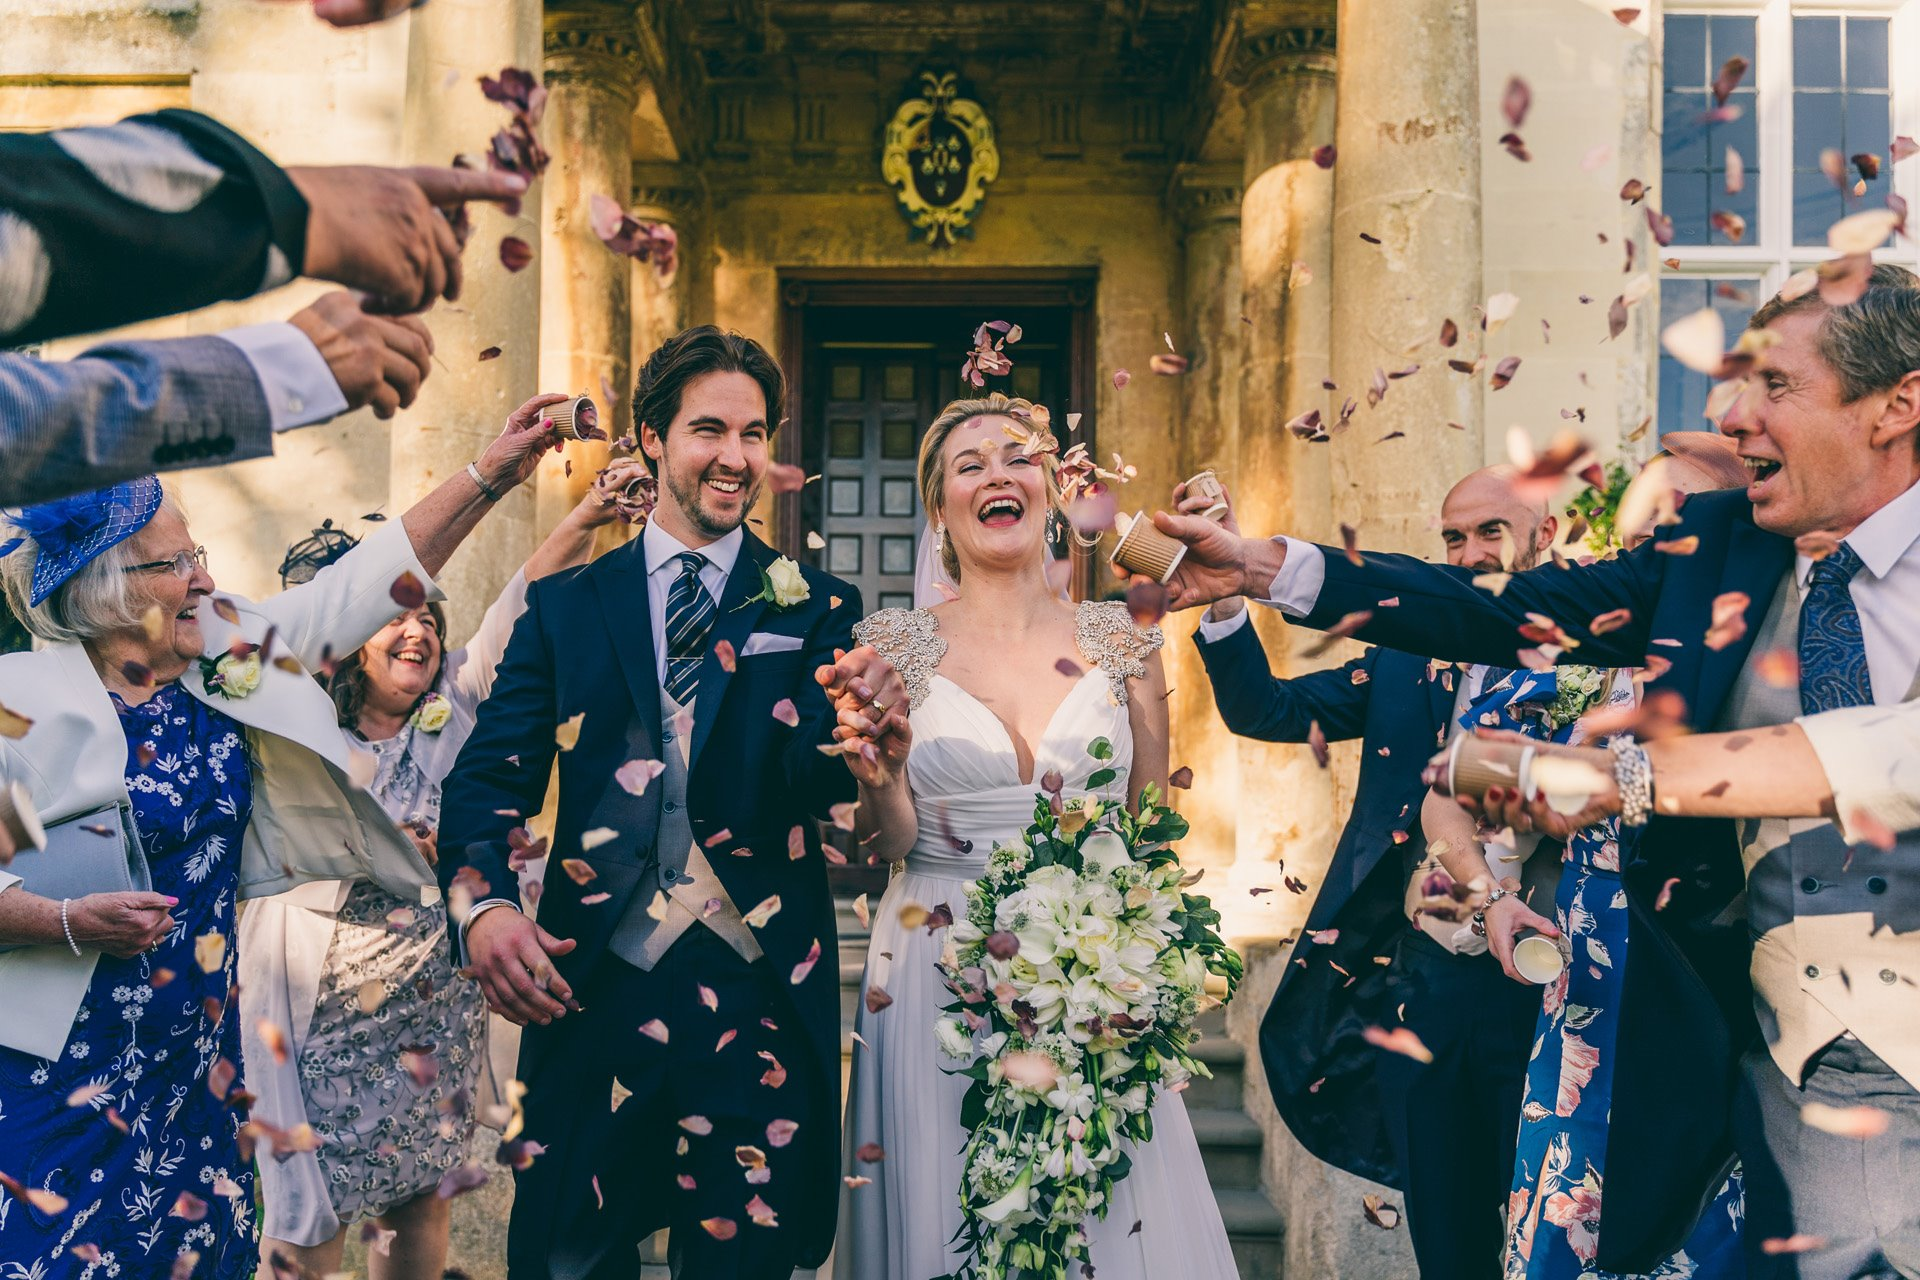 Micro wedding couple covered in confetti surrounded by friends and family outside at elmore court covid safe wedding venue